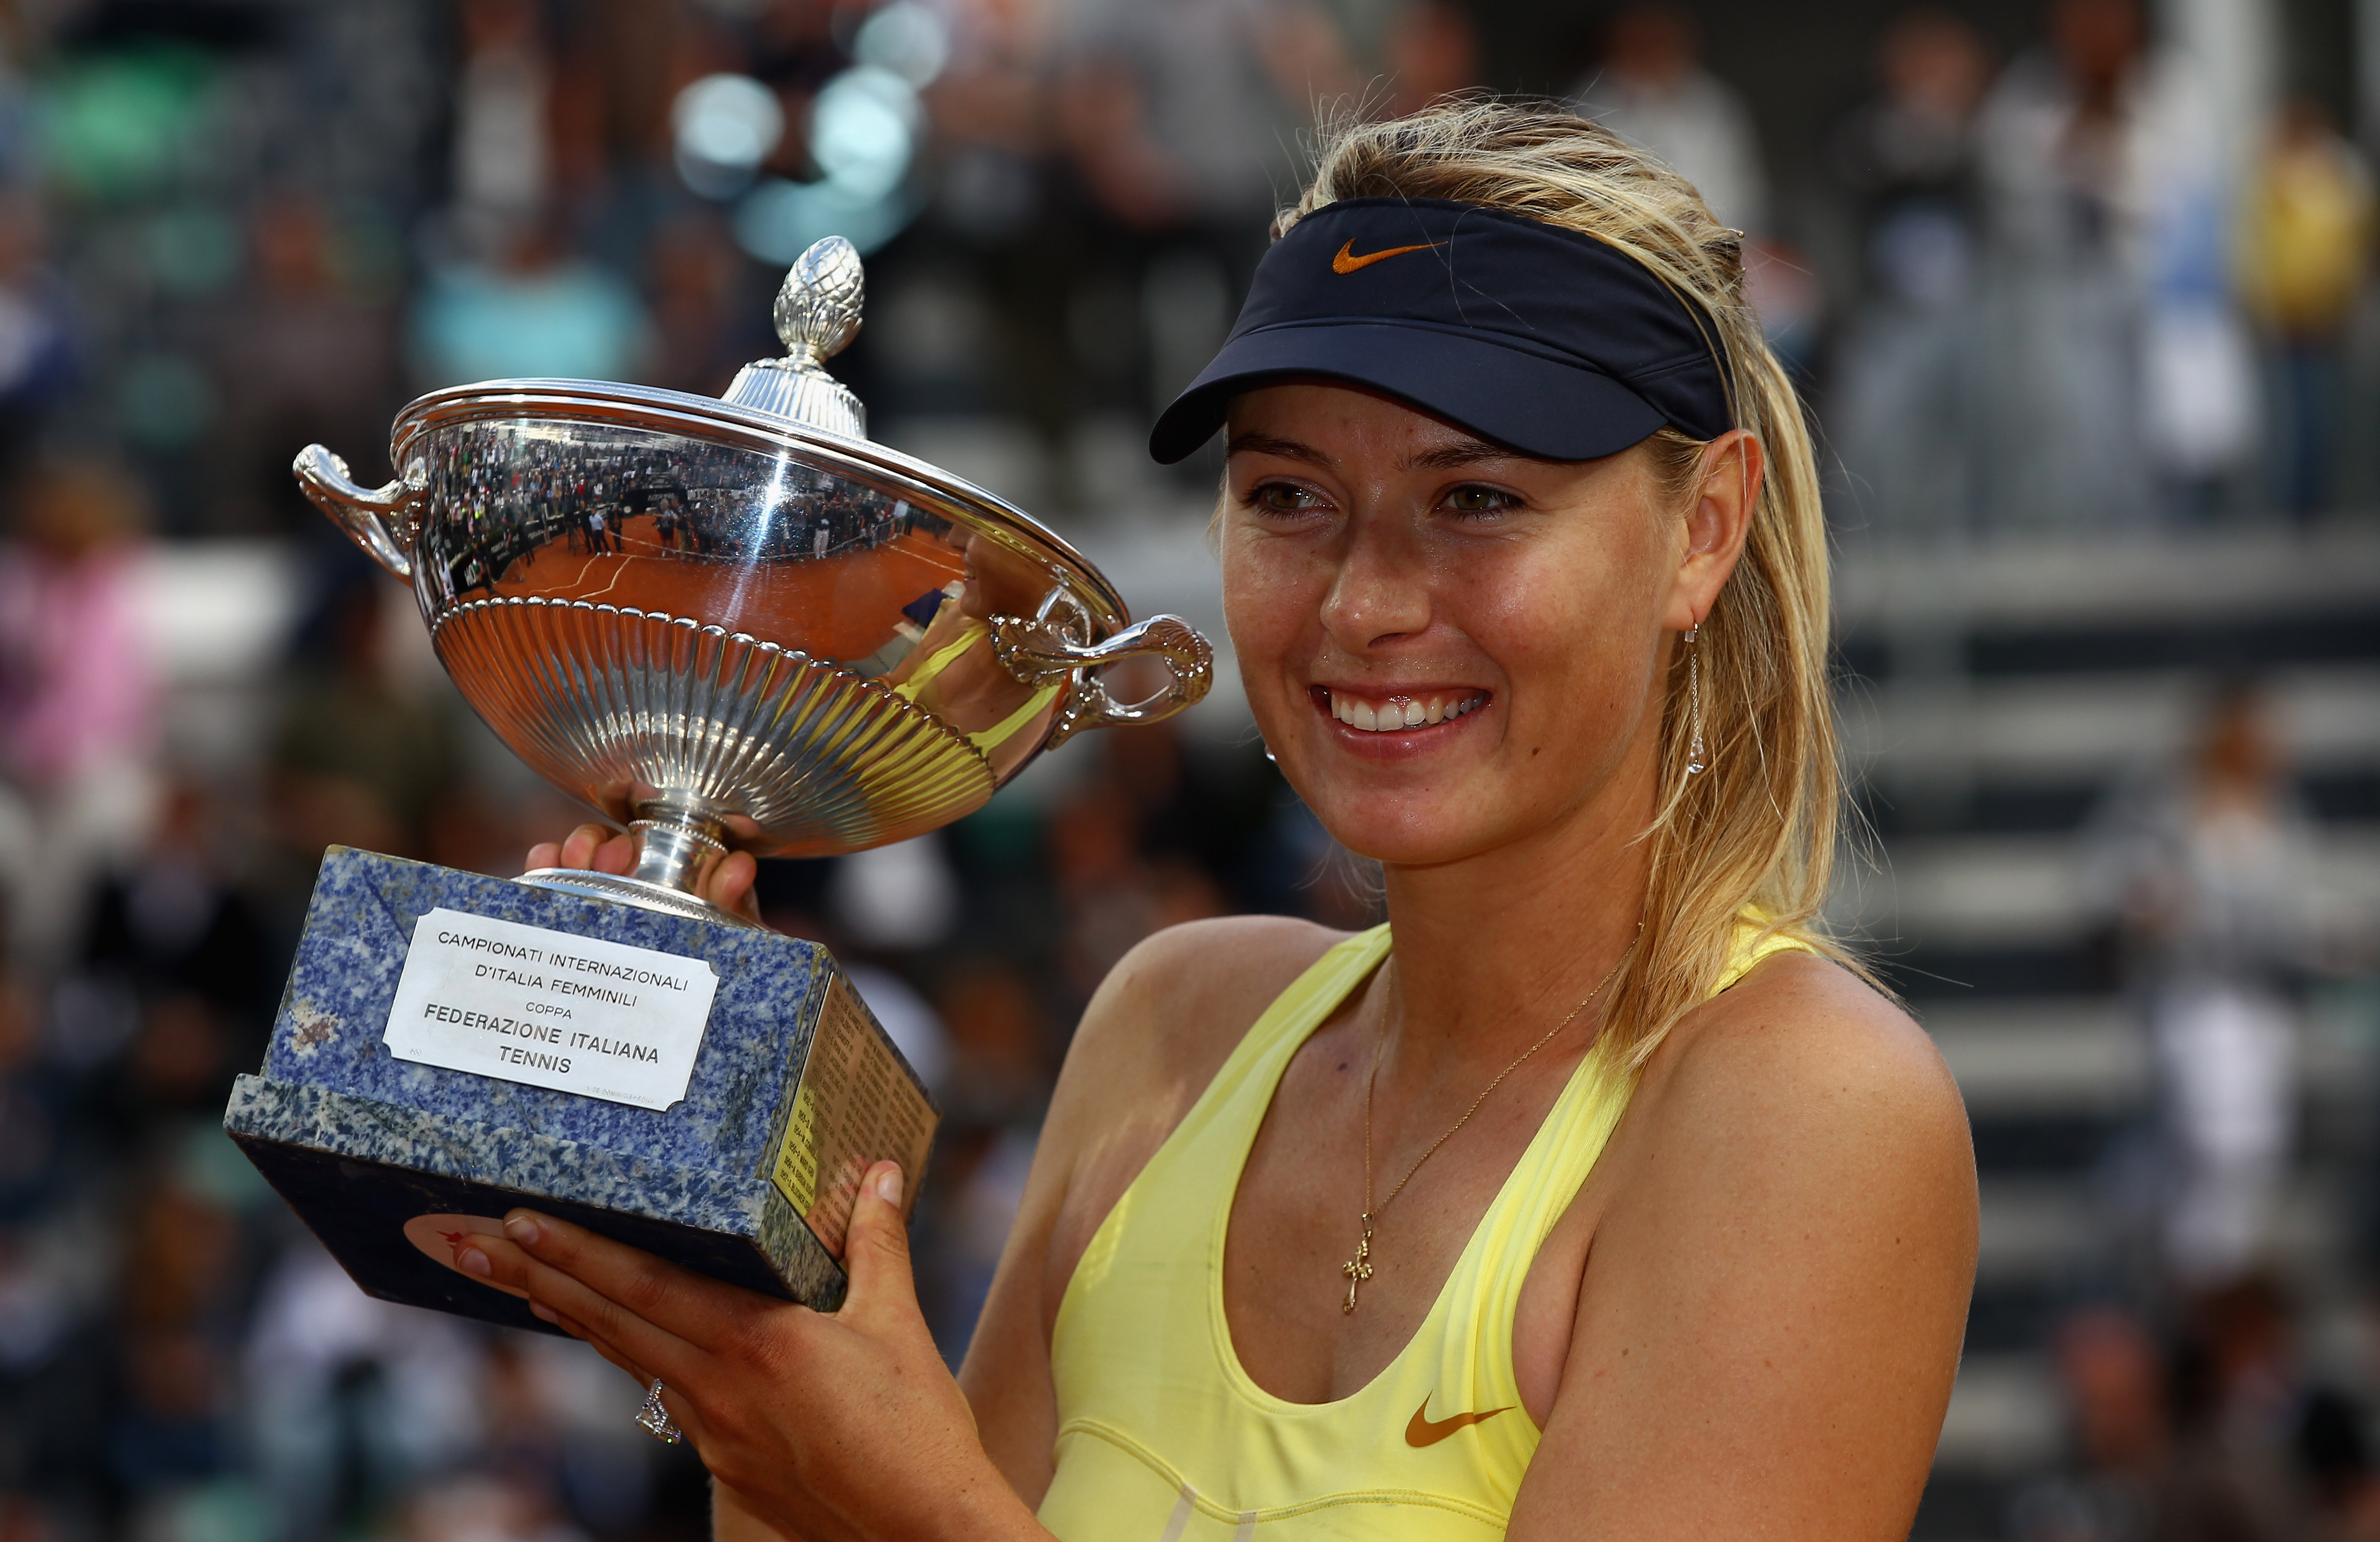 ROME, ITALY - MAY 15:  Maria Sharapova of Russia poses with the trophy after her victory in the final against Samantha Stosur of Australia during day eight of the Internazoinali BNL D'Italia at the Foro Italico Tennis Centre on May 15, 2011 in Rome, Italy